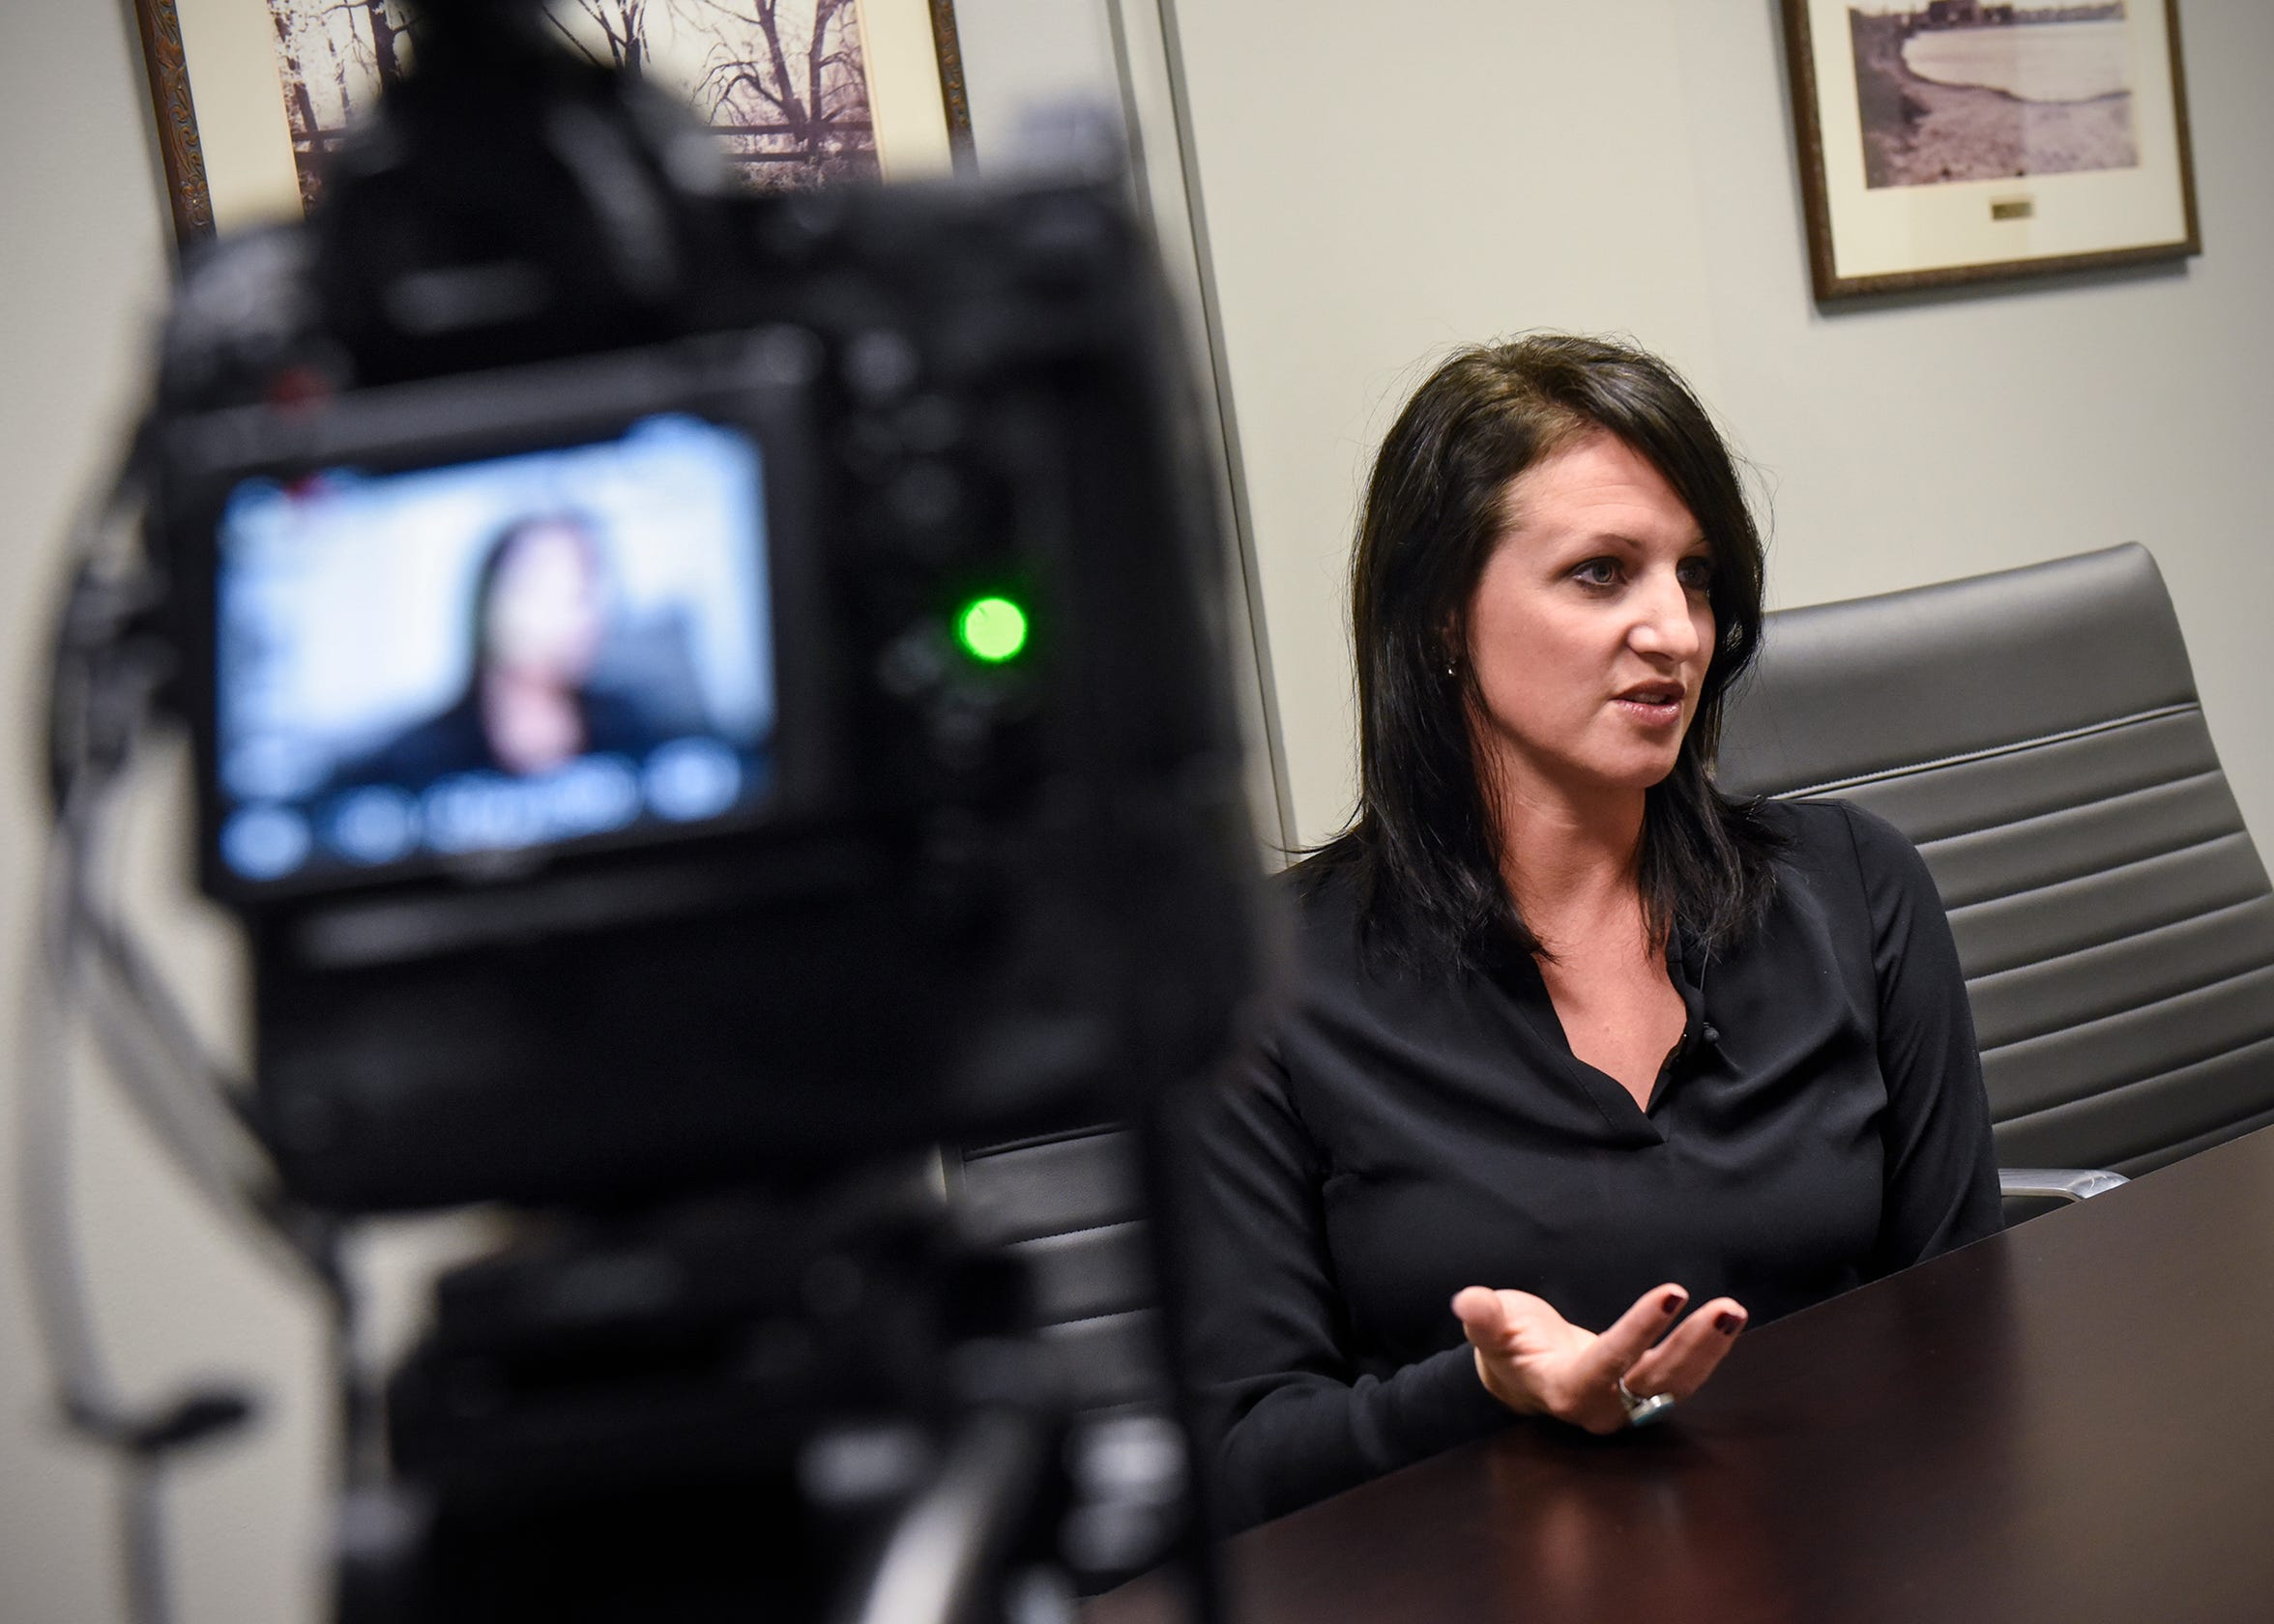 Moss & Barnett Business Development Director Shannon Wiger outlines her background during an interview Wednesday, Dec. 12, in St. Cloud.